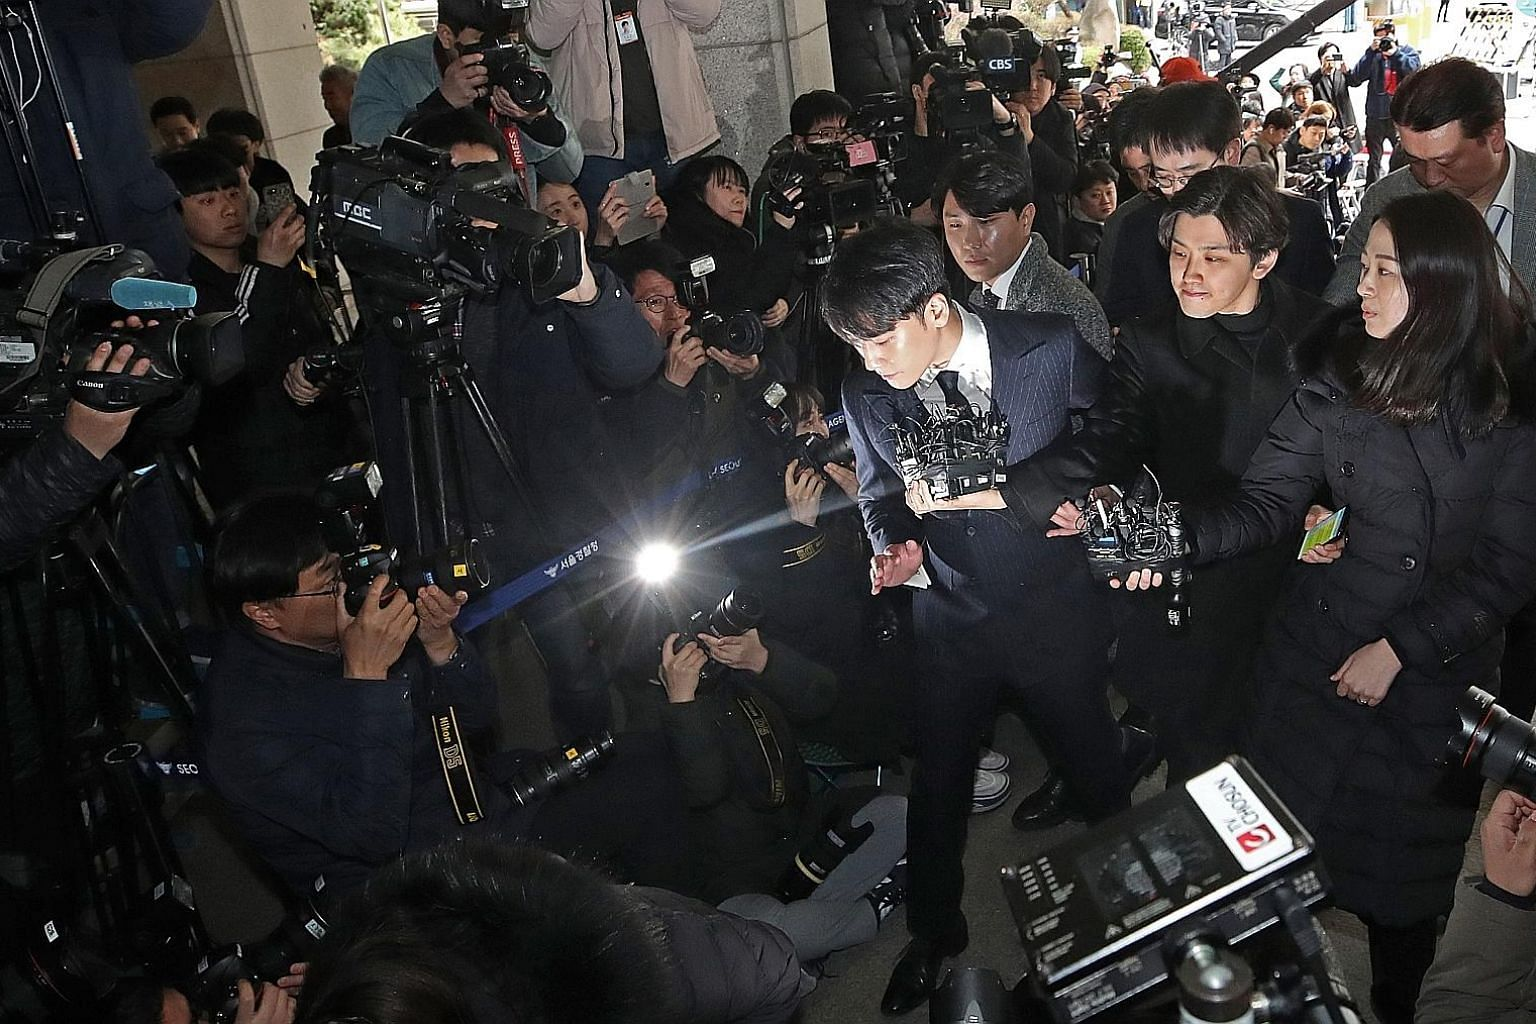 Seungri, a member of K-pop boy band BigBang, arriving at the Seoul Metropolitan Policy Agency last Thursday for questioning on suspicion that he drugged girls and sent them to VIP customers of a club that he co-owned. He was later found to be in a ch